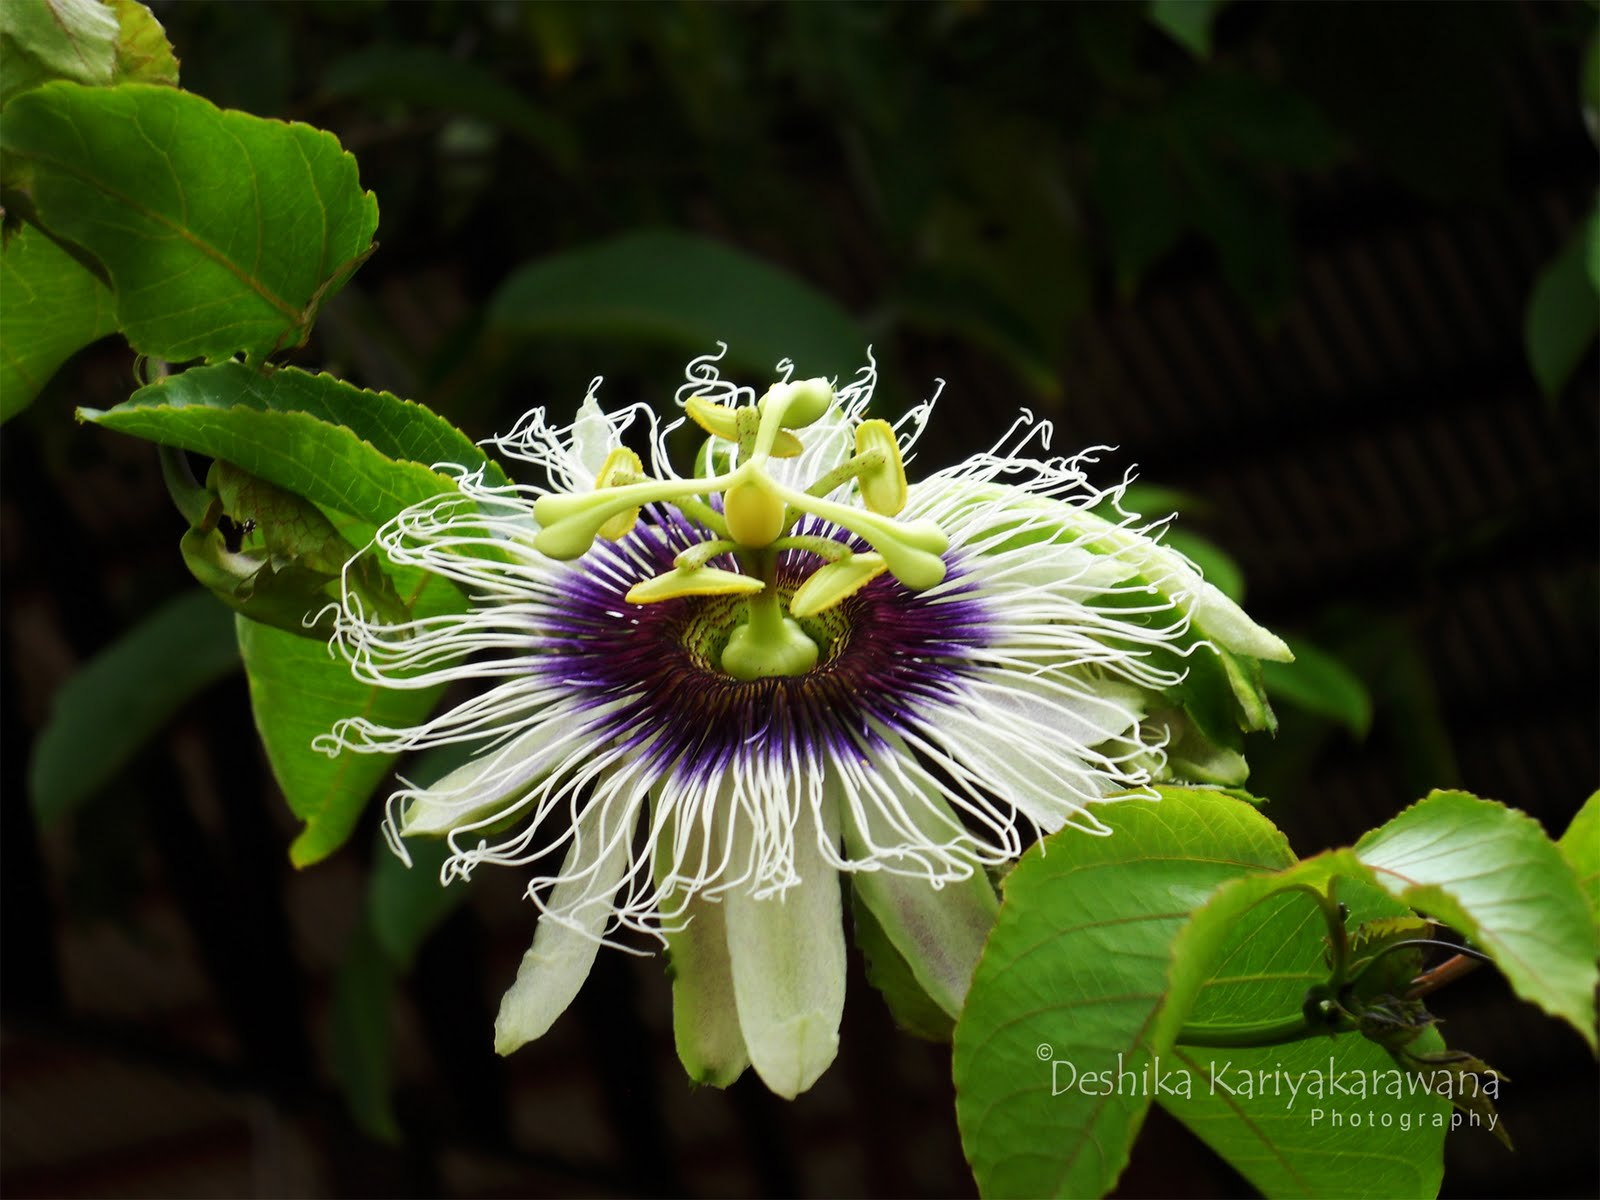 Art of a Third Eye Passion Fruit Flower